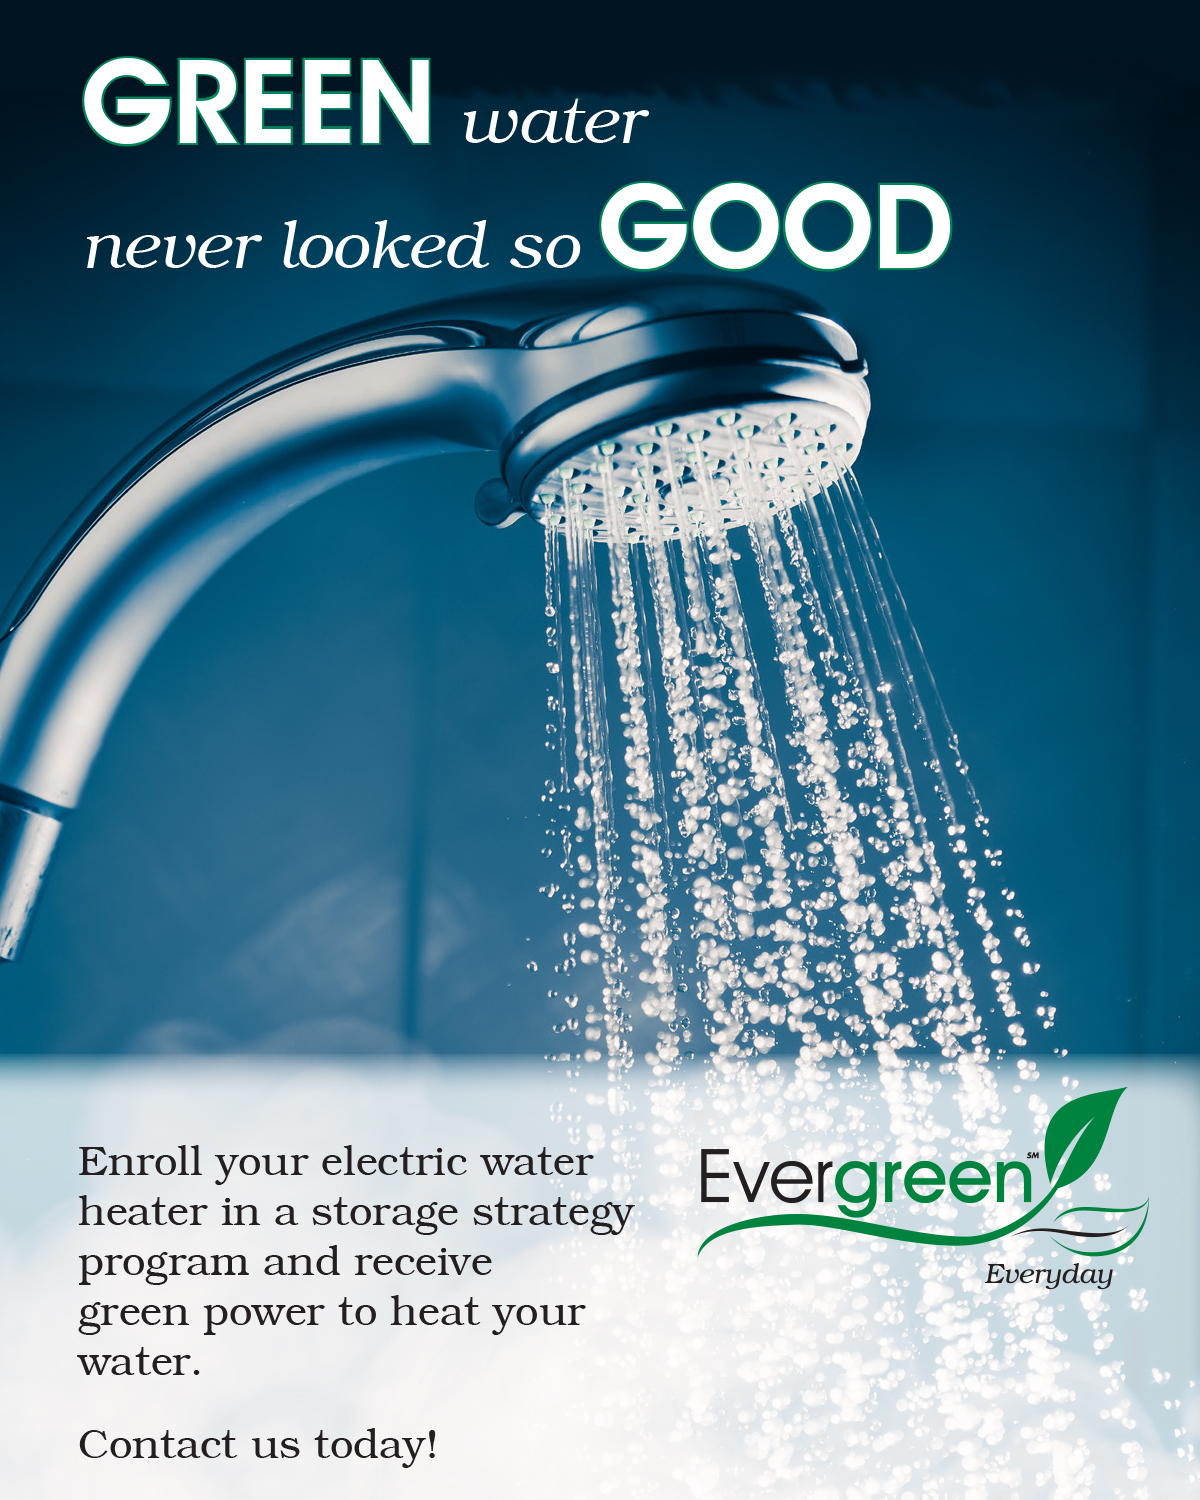 water coming out of shower head with text green water never looked so good